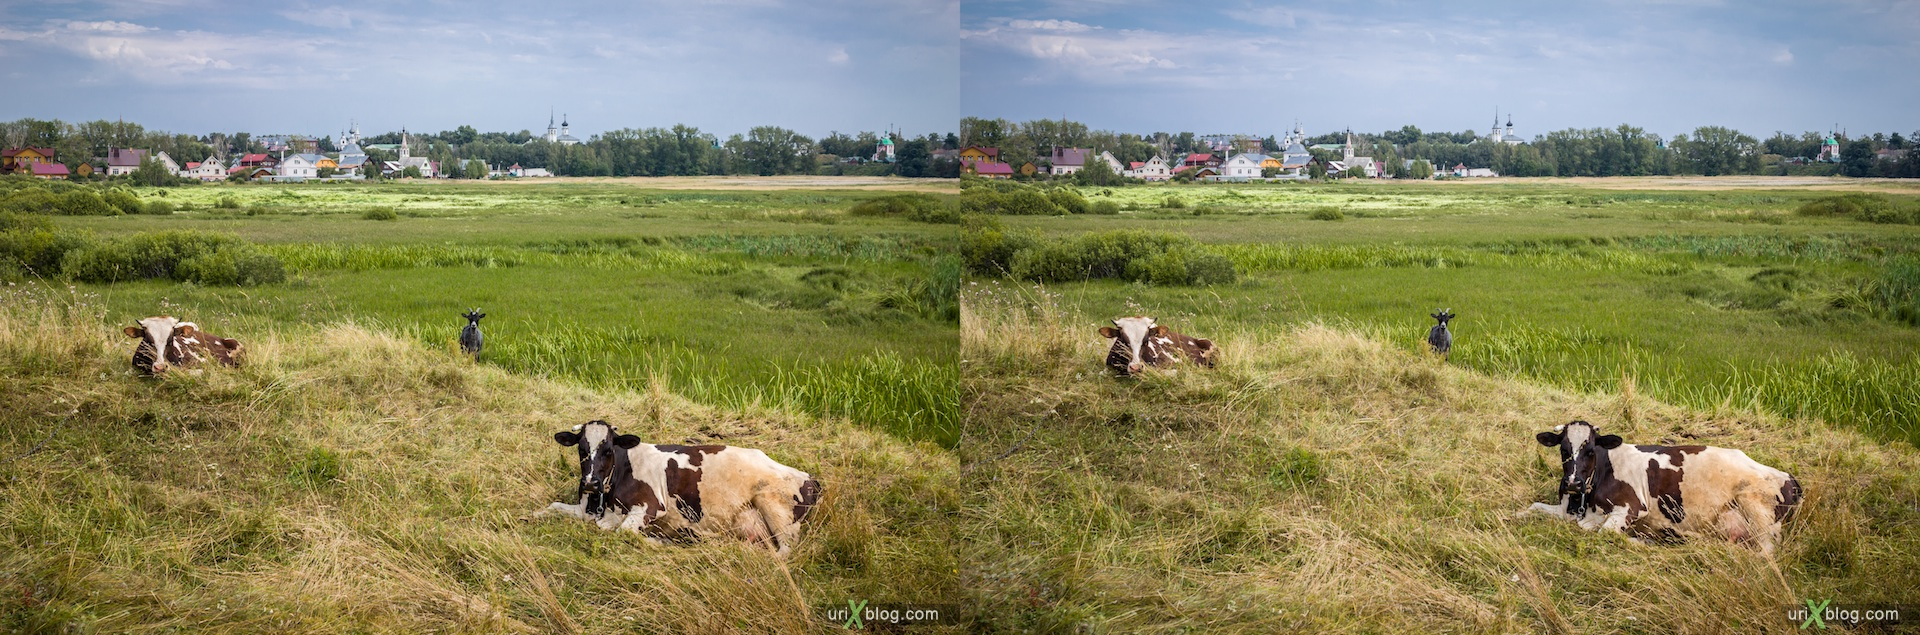 2012 Russia Suzdal Cows stereo 3d